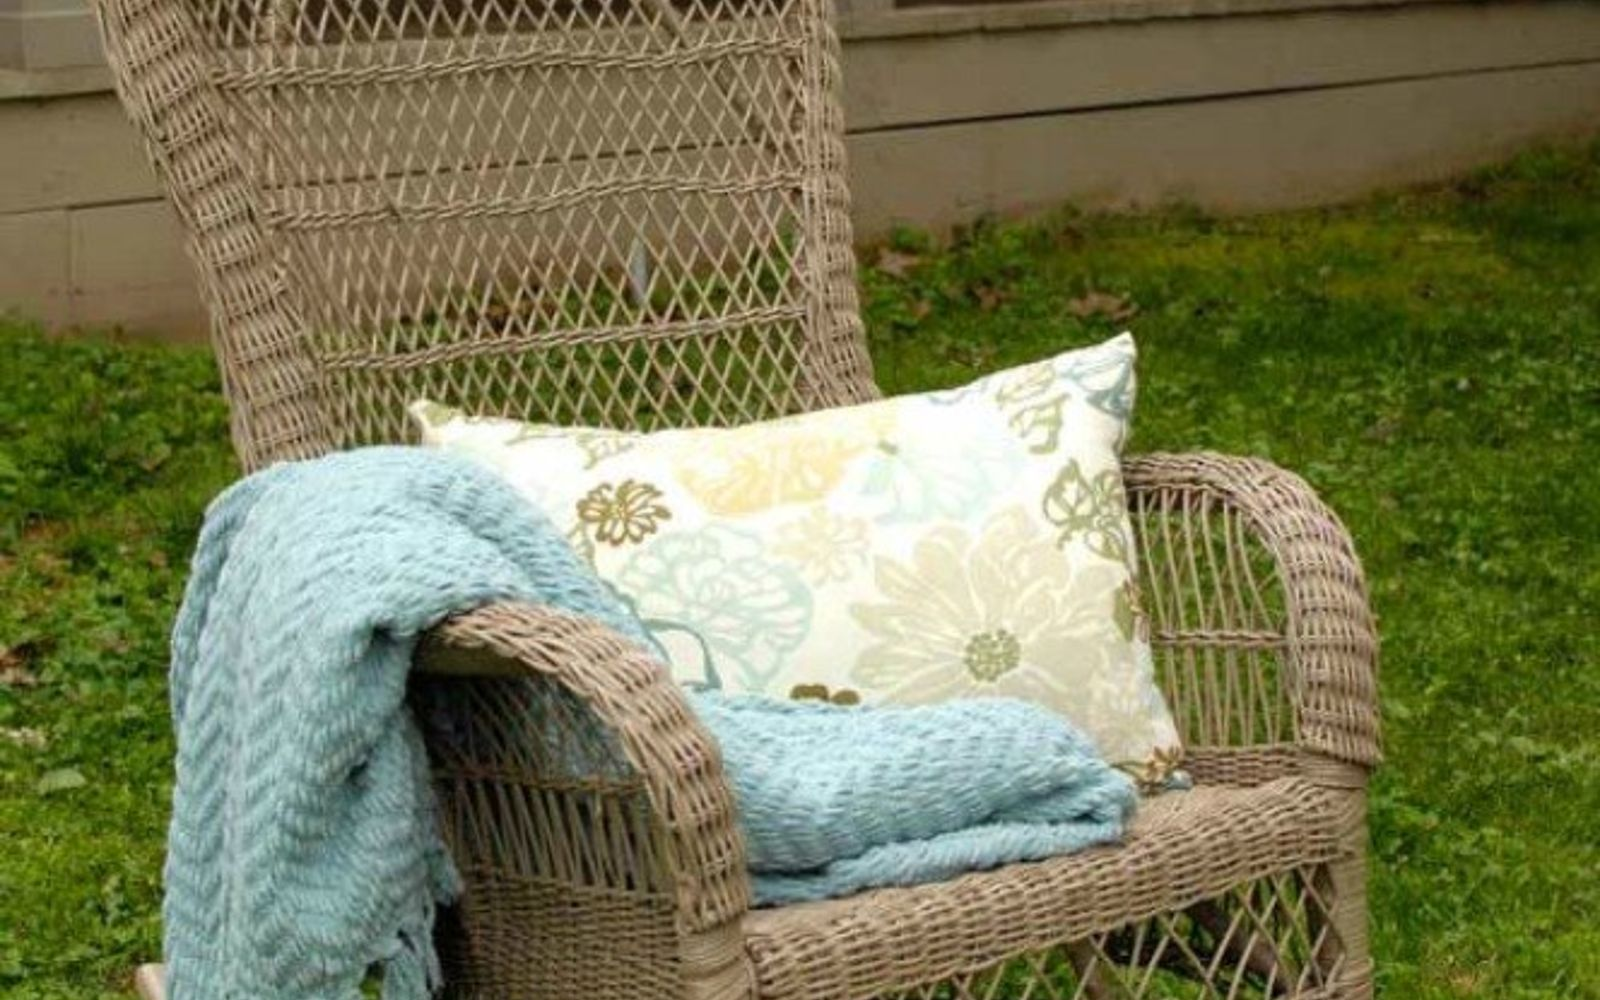 s make wicker trendy again with these brilliant ideas, painted furniture, After A lovely chair for your outdoor porch